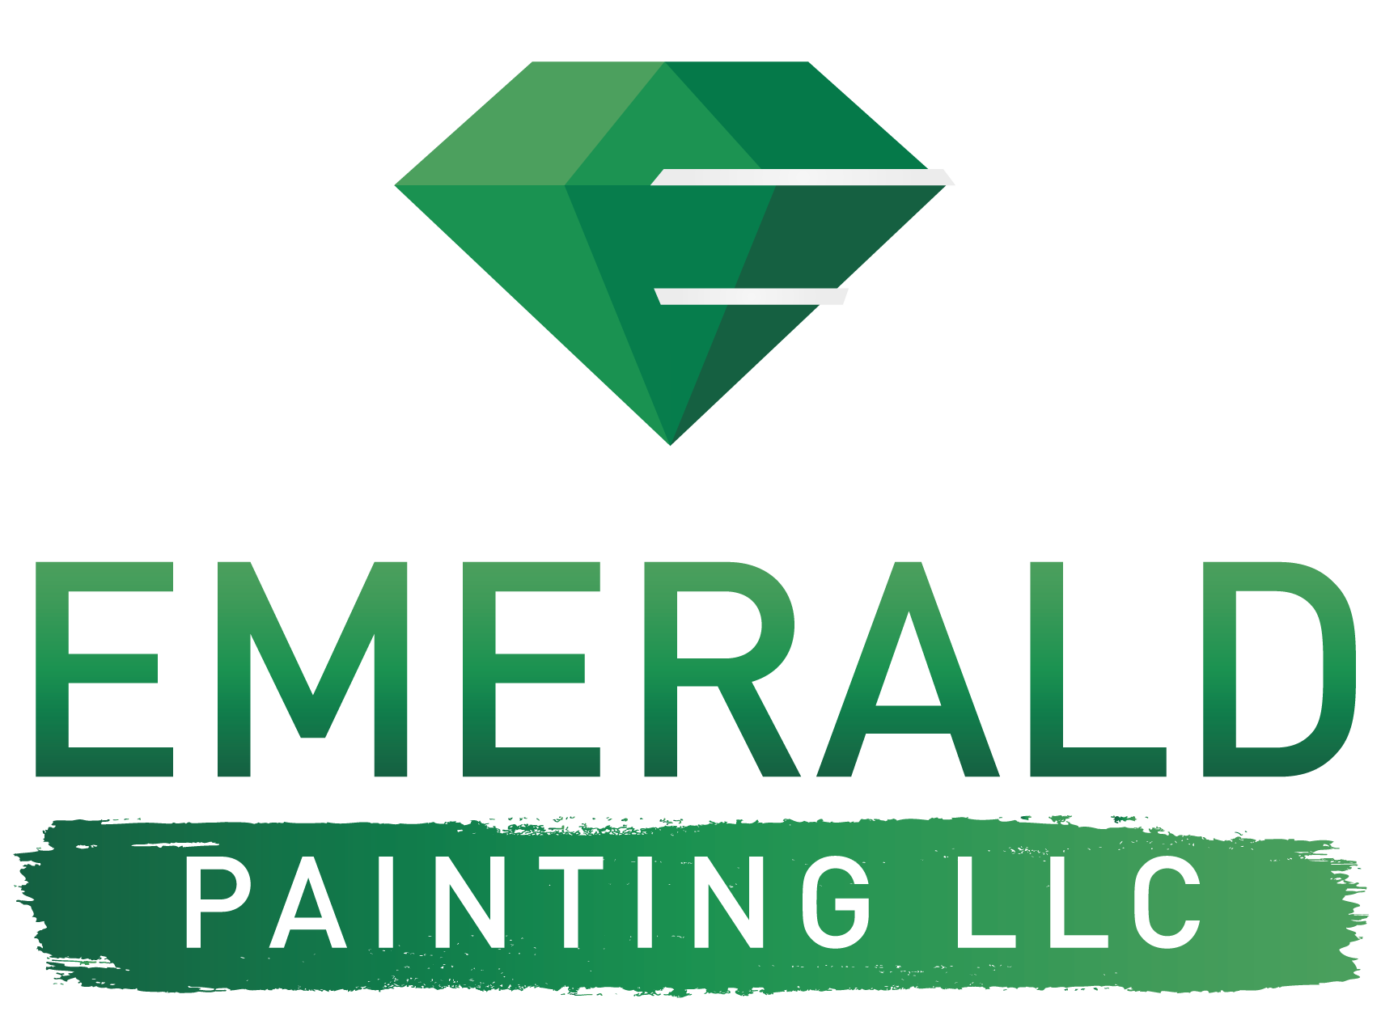 Emerald Paintng